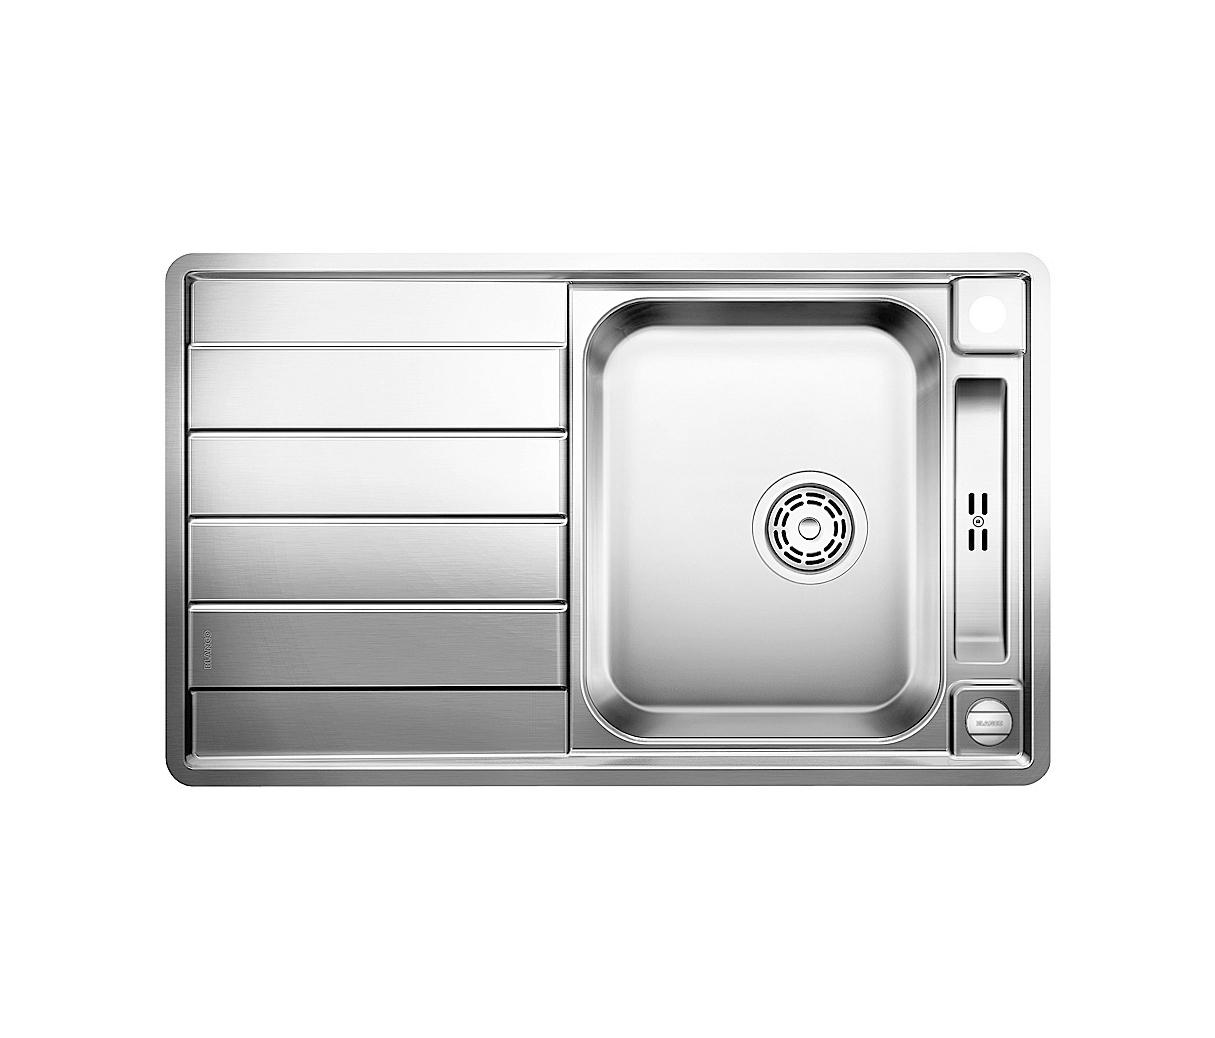 BLANCO AXIS II 45 S-IF - Kitchen sinks from Blanco | Architonic